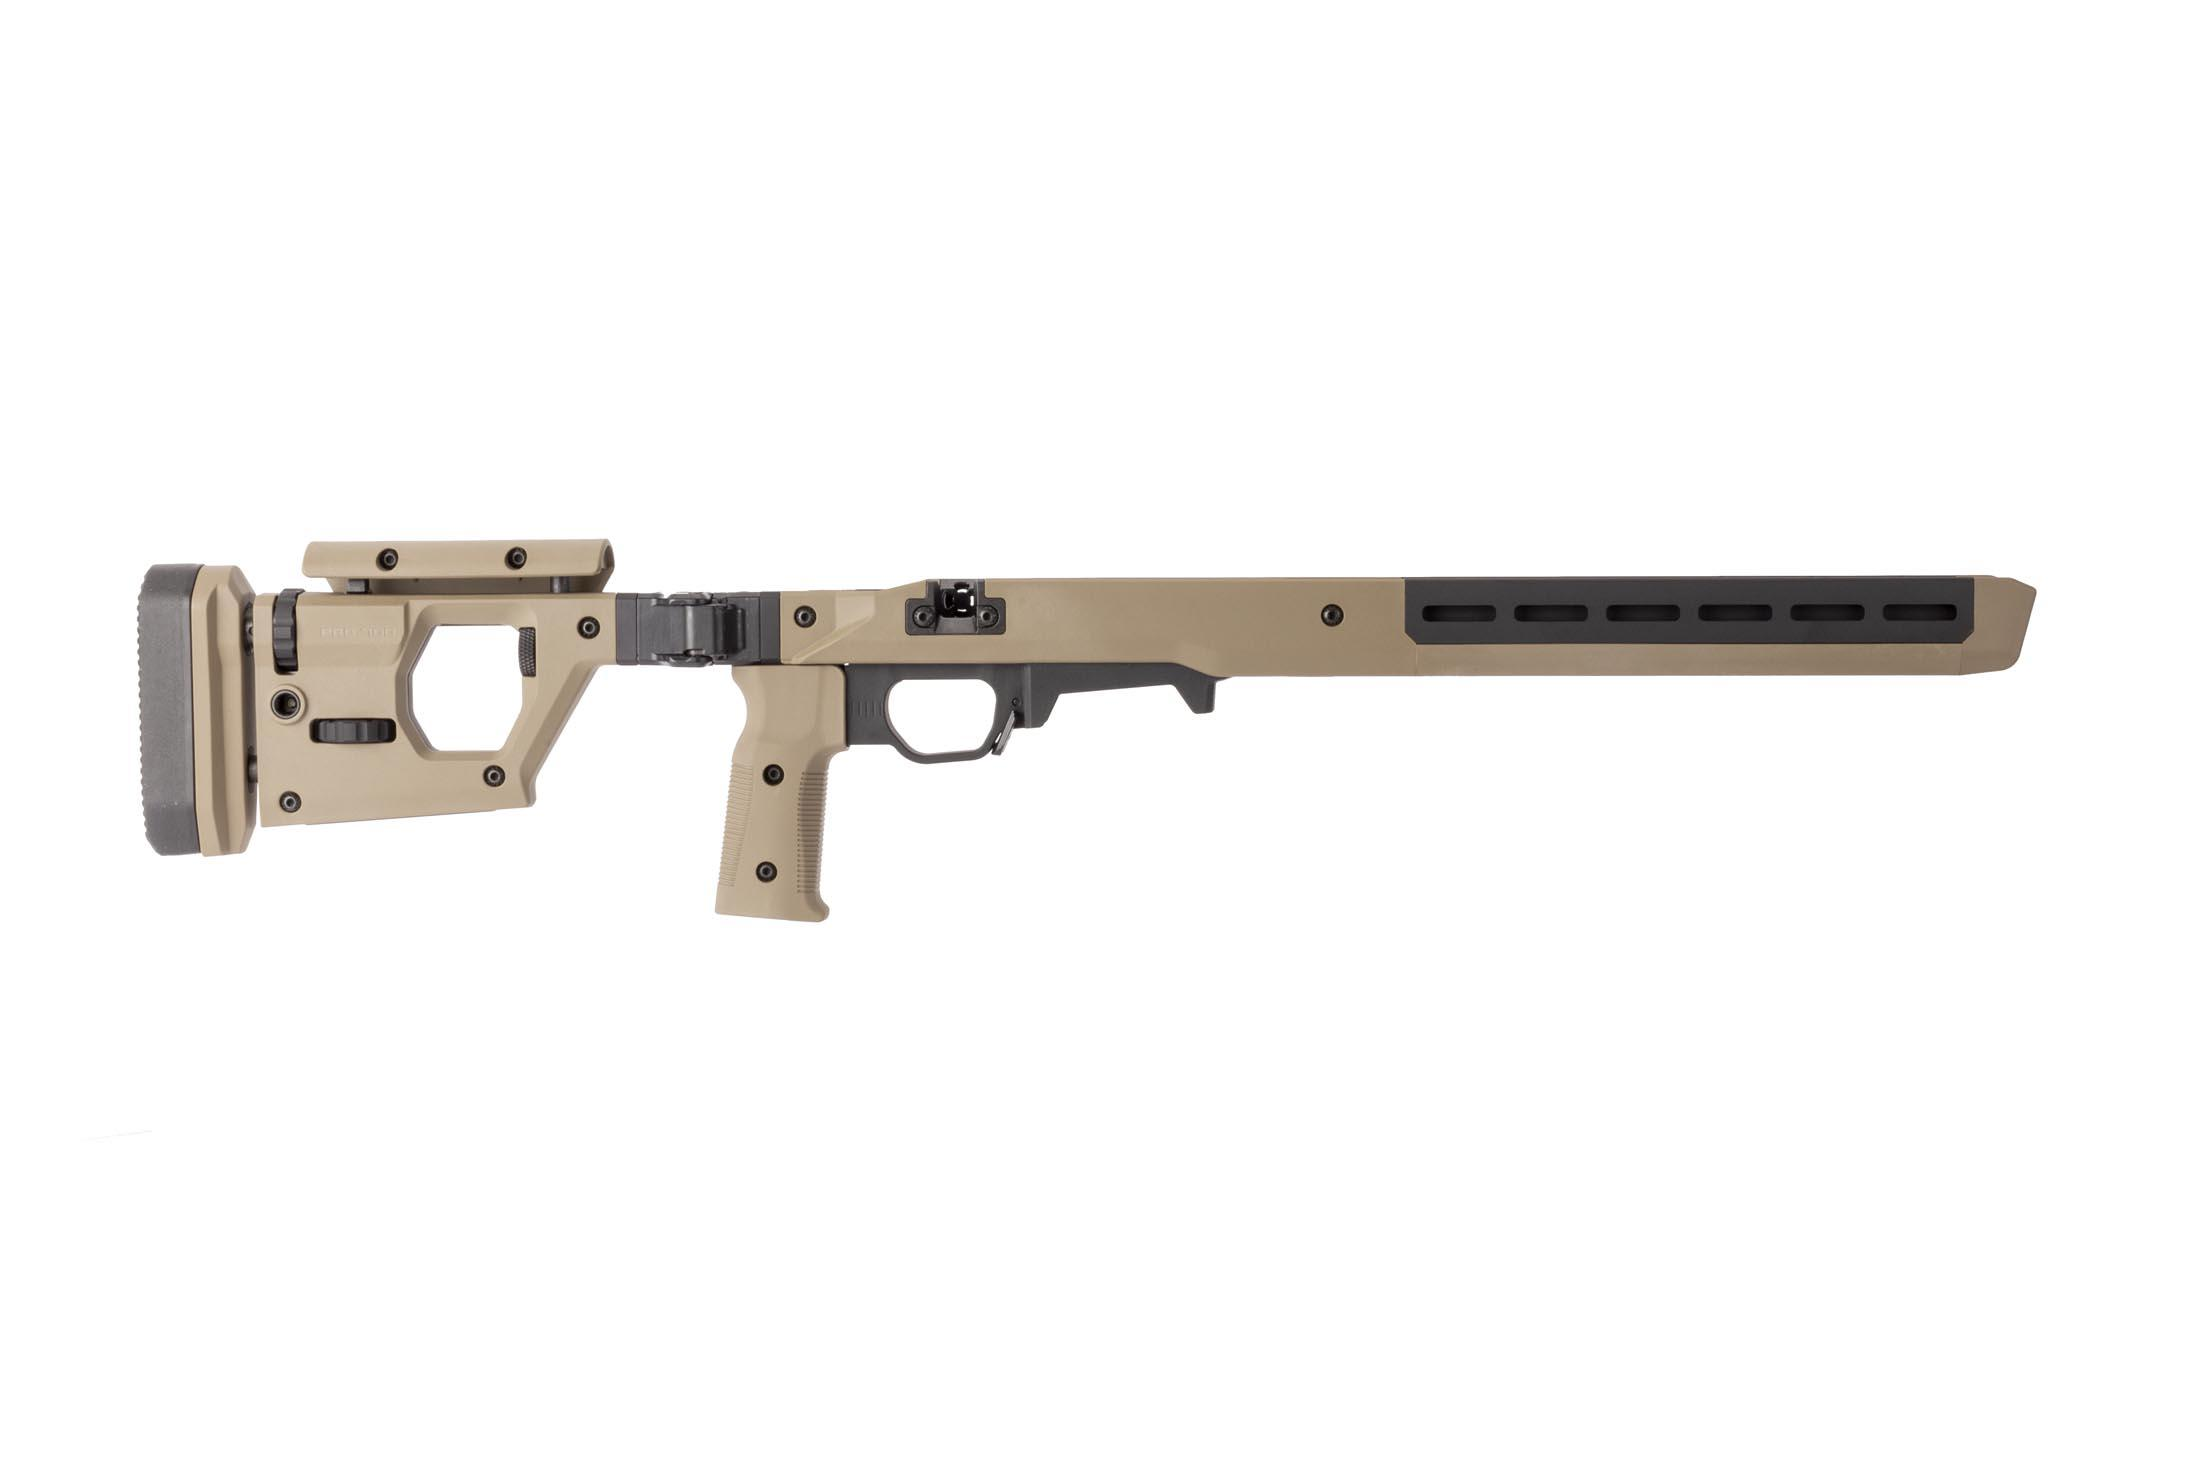 Magpul flat dark earth PRO 700 rifle chassis features adjustable comb and length of pull on the folding stock.